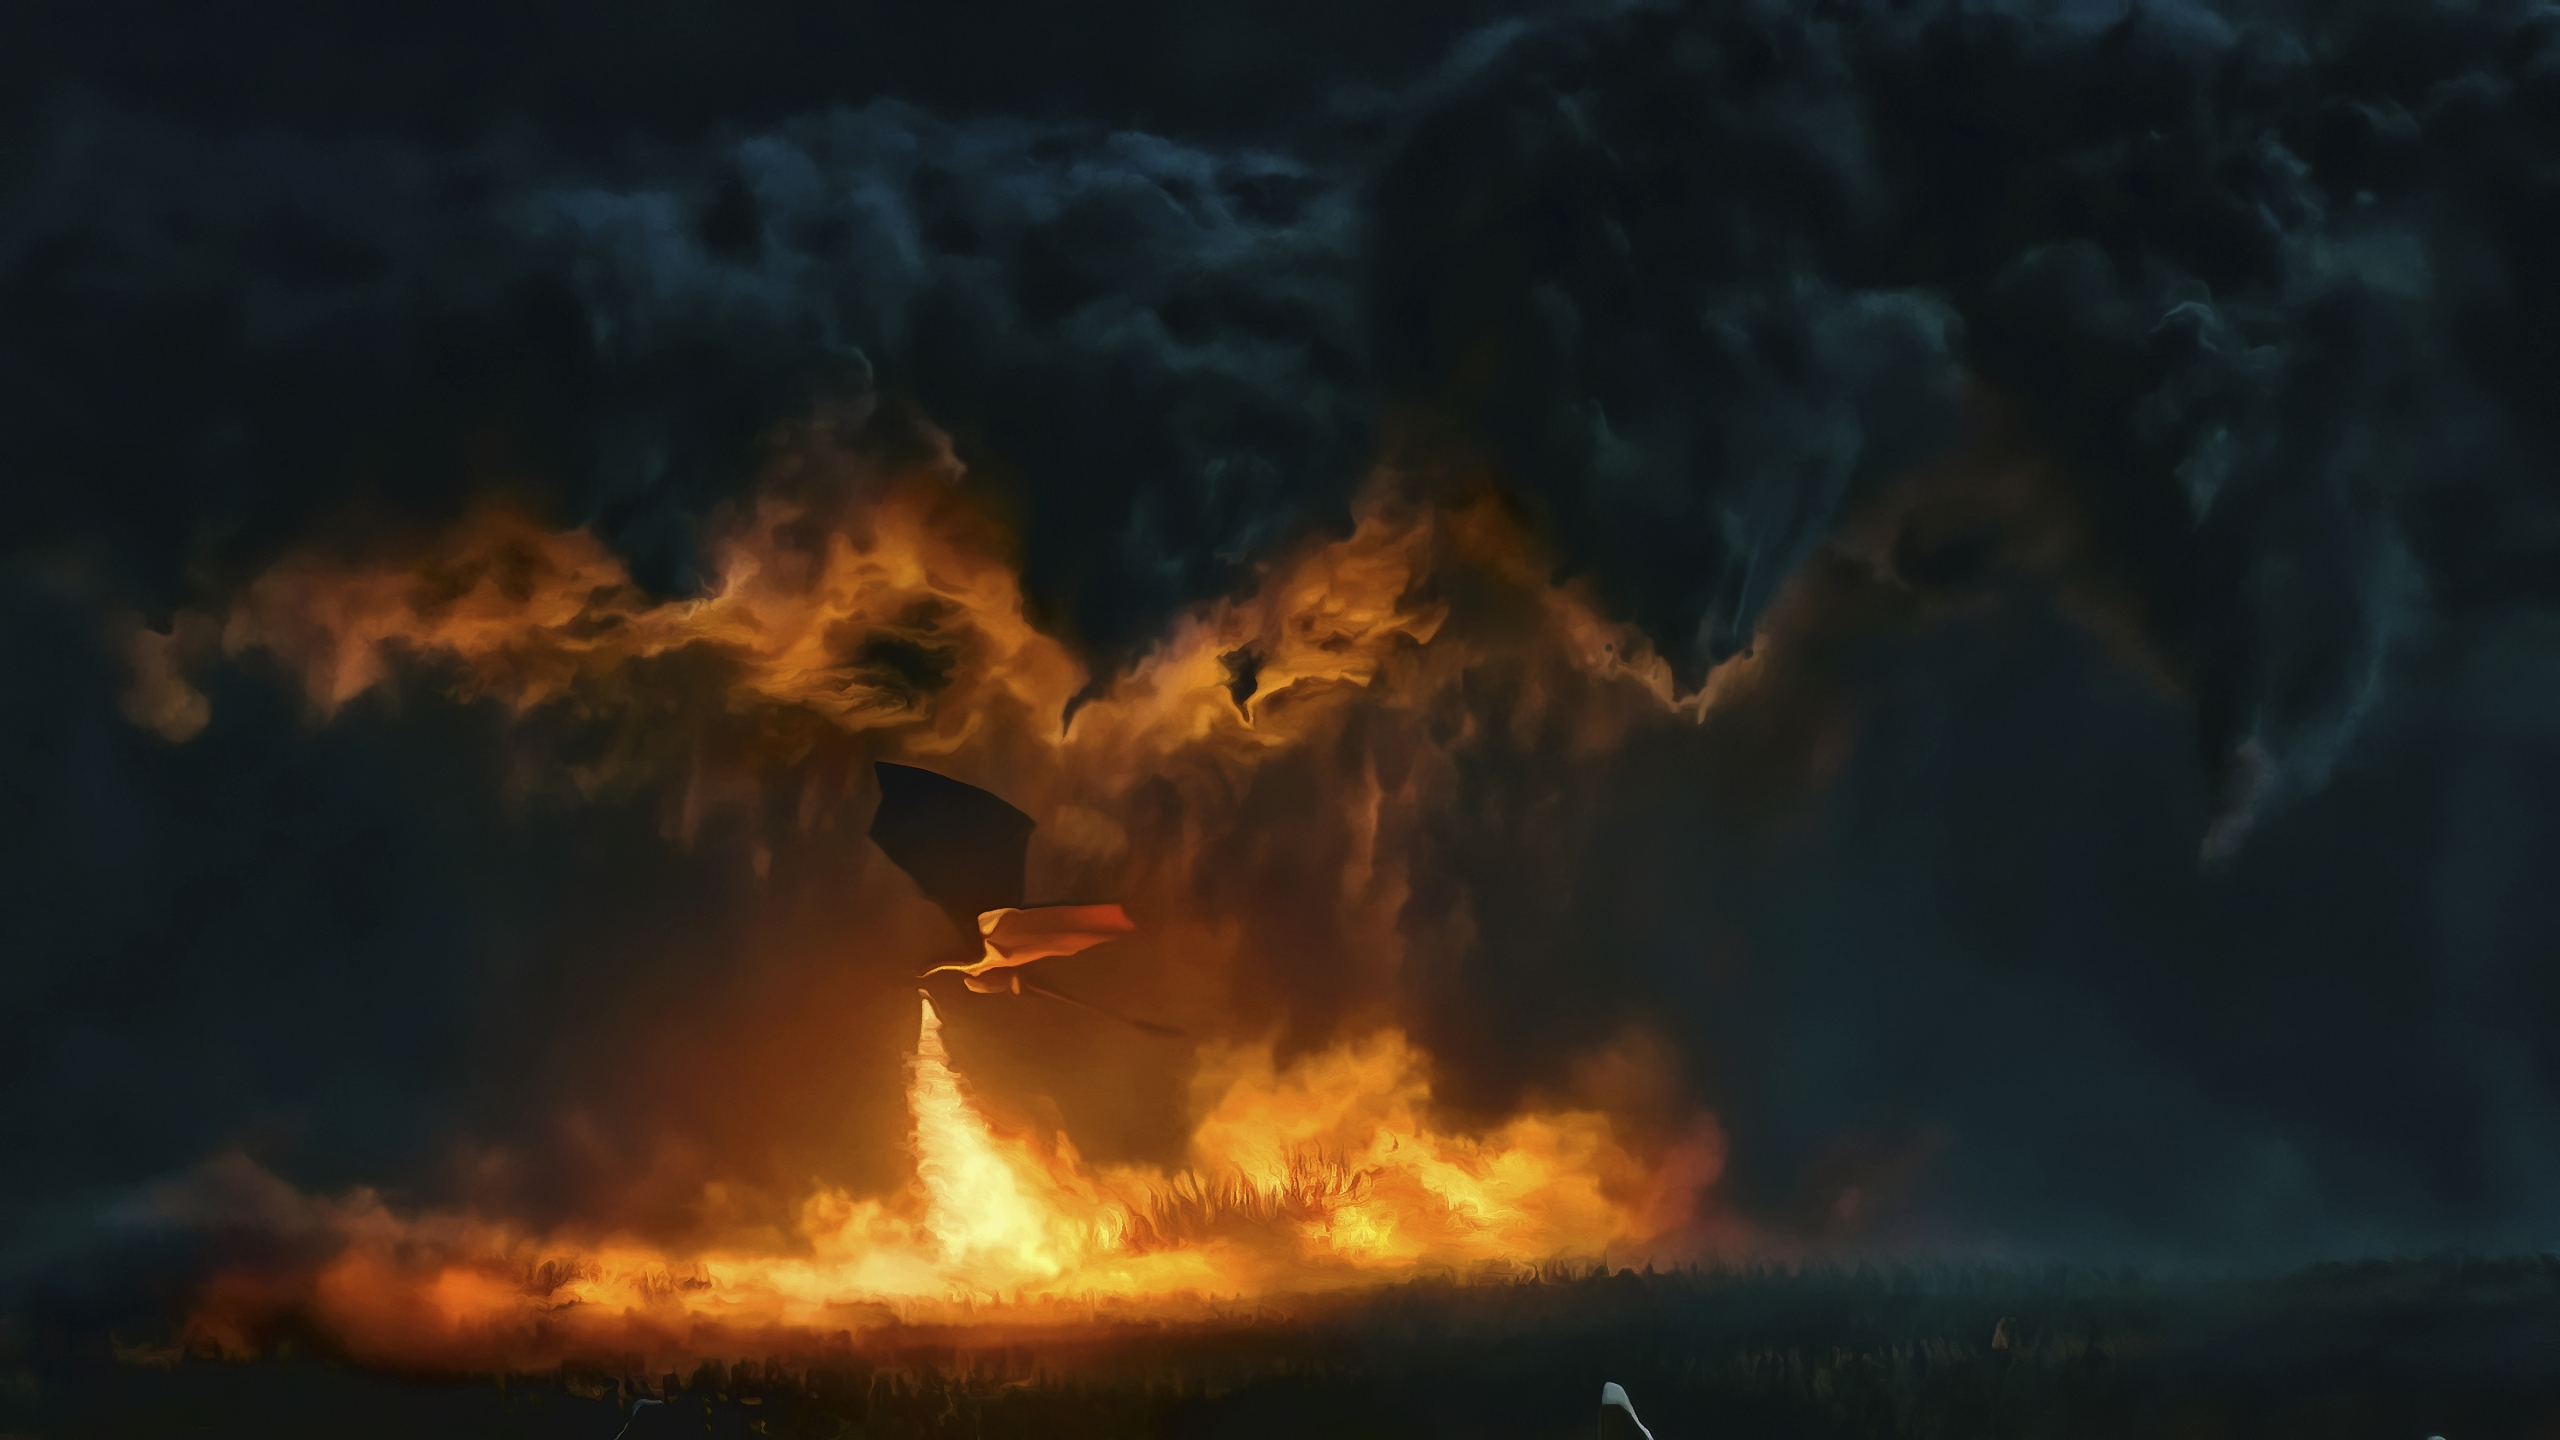 2560x1440 Game Of Thrones Dragon Fire 1440p Resolution